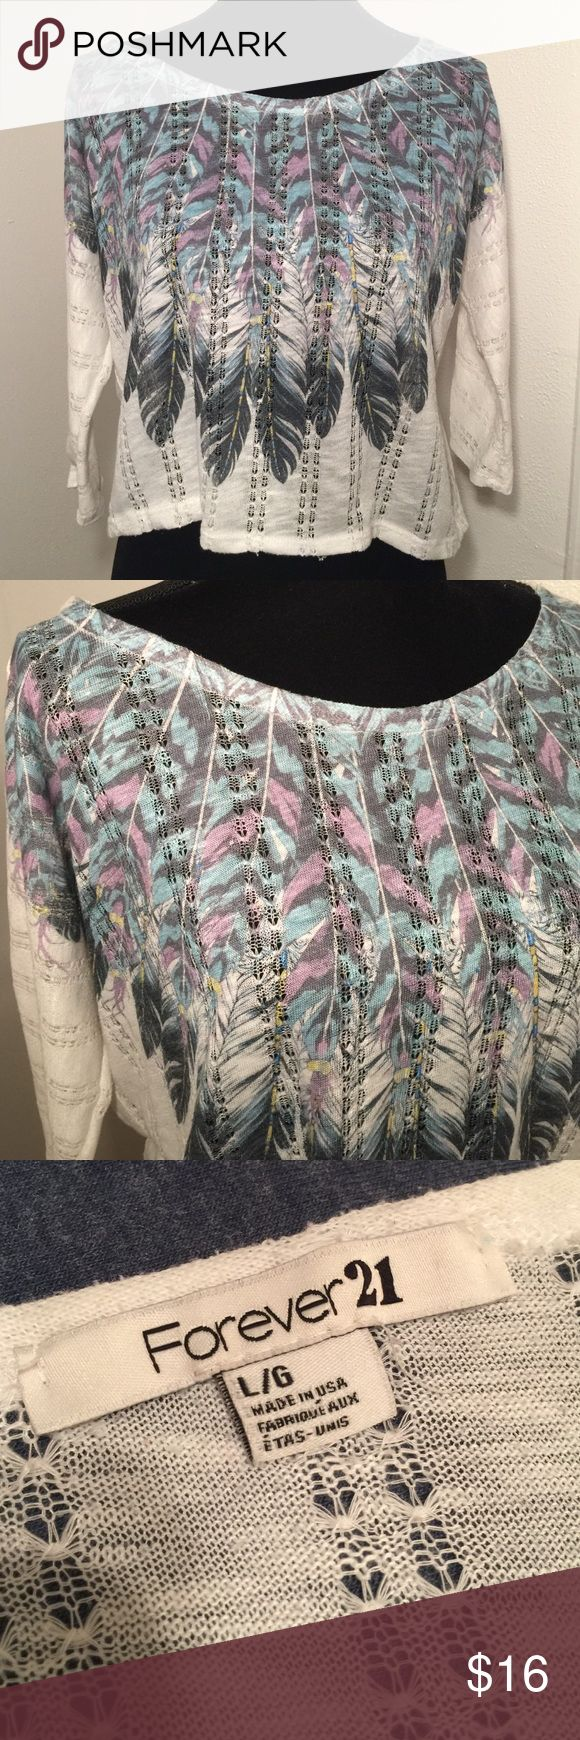 Forever 21 large feather crop top Forever 21 large feather crop top. Bust measures approximately 24 inches. Shoulder to hem measures approximately 21 inches. See-through and Lacey, very delicate, you would need to wear a tank top or Cami underneath. Forever 21 Tops Crop Tops